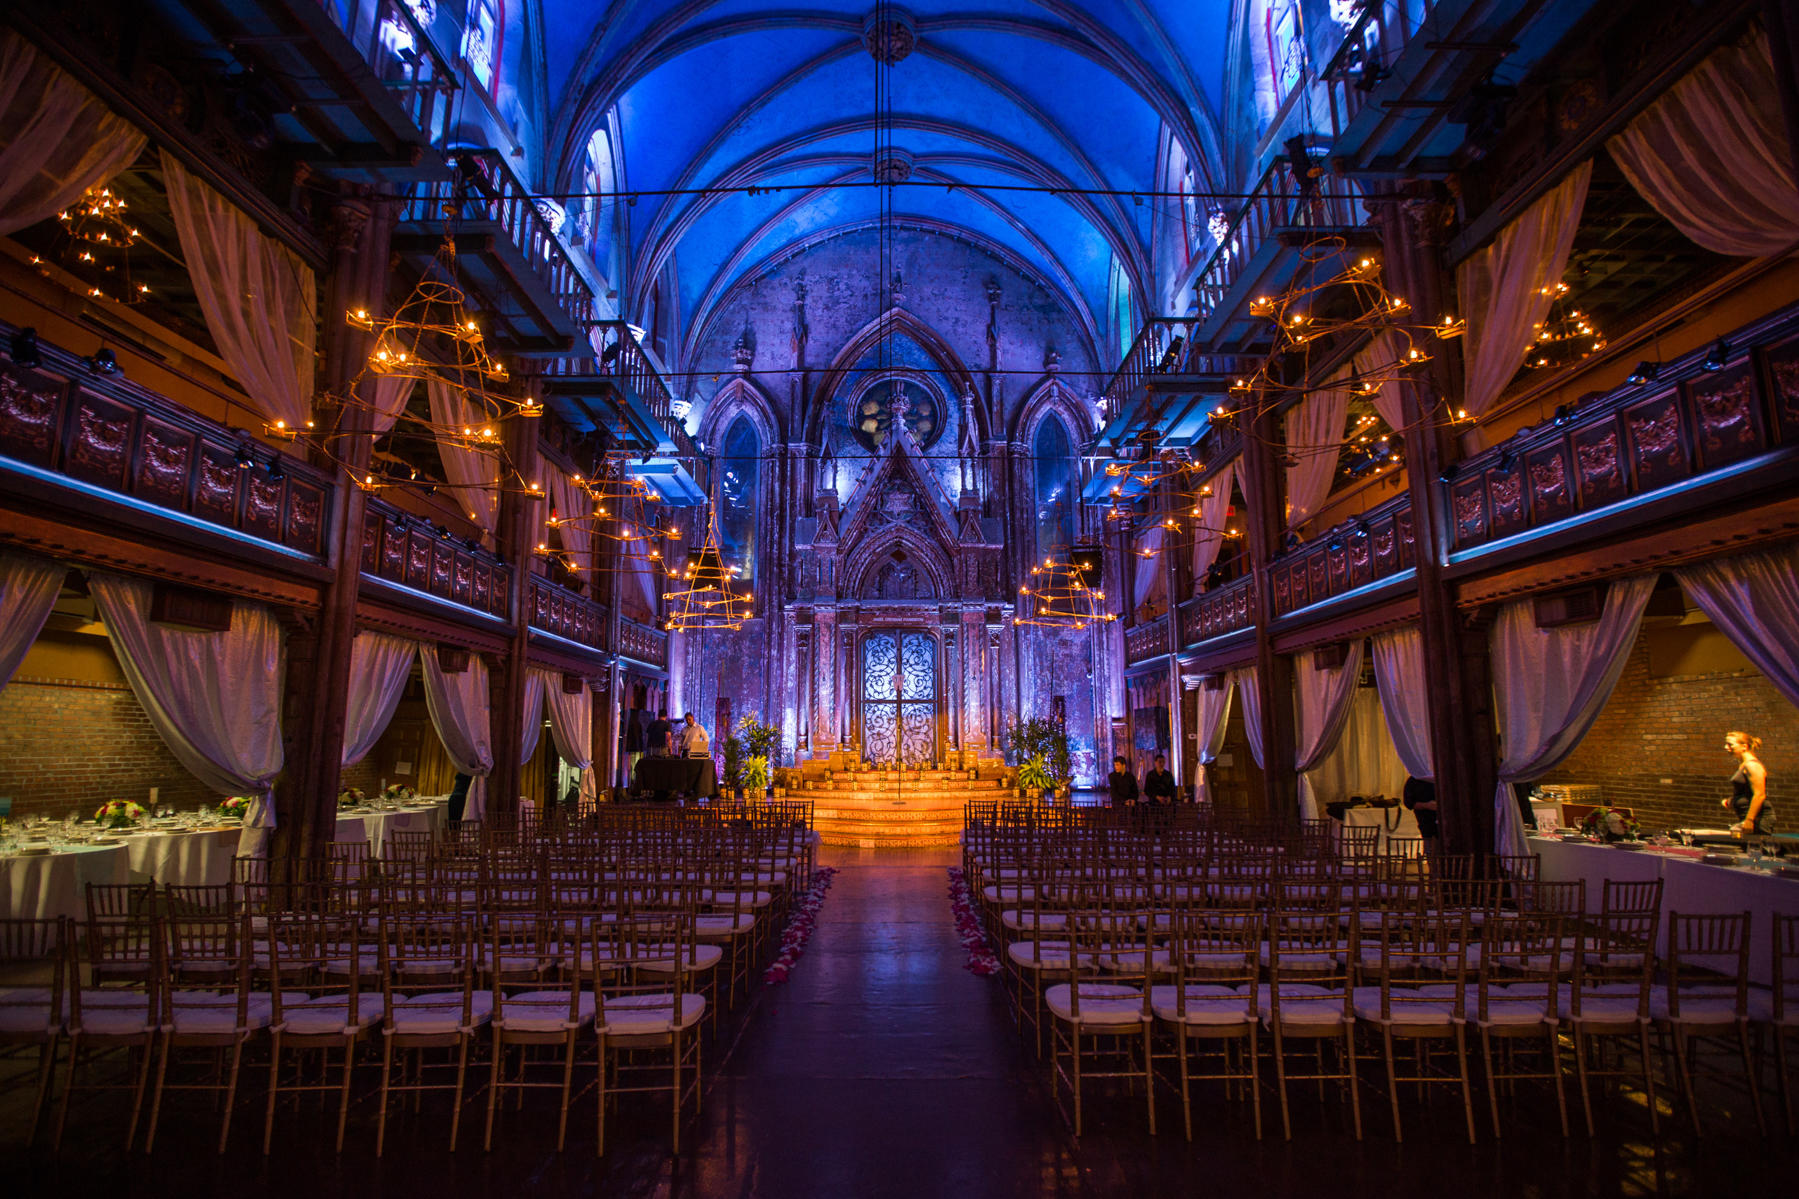 Andrea and Patrick's wedding took place at the Angel Orensanz Foundation for Contemporary Art in New York City.